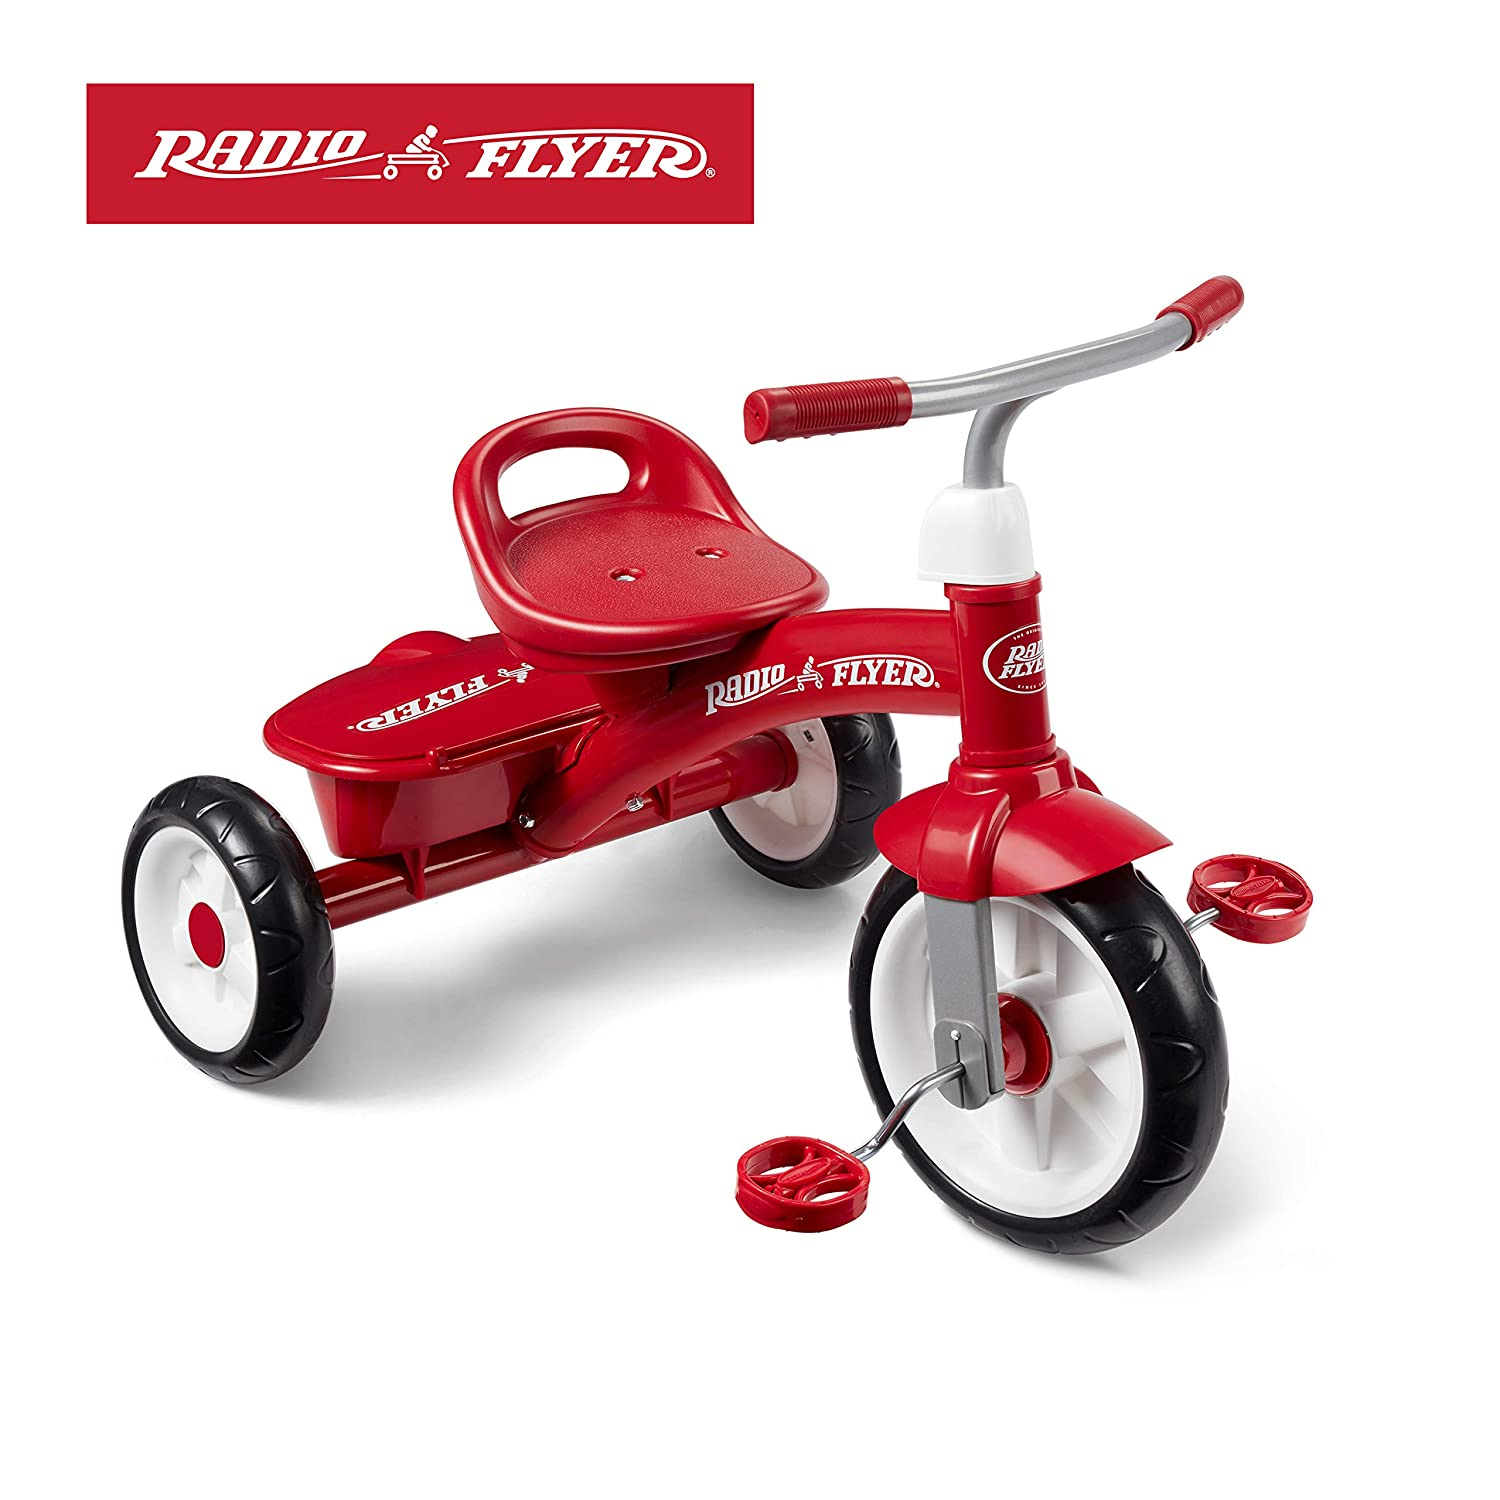 094cf12ee0252 Amazon.com: Radio Flyer Red Rider Trike (Amazon Exclusive): Toys & Games